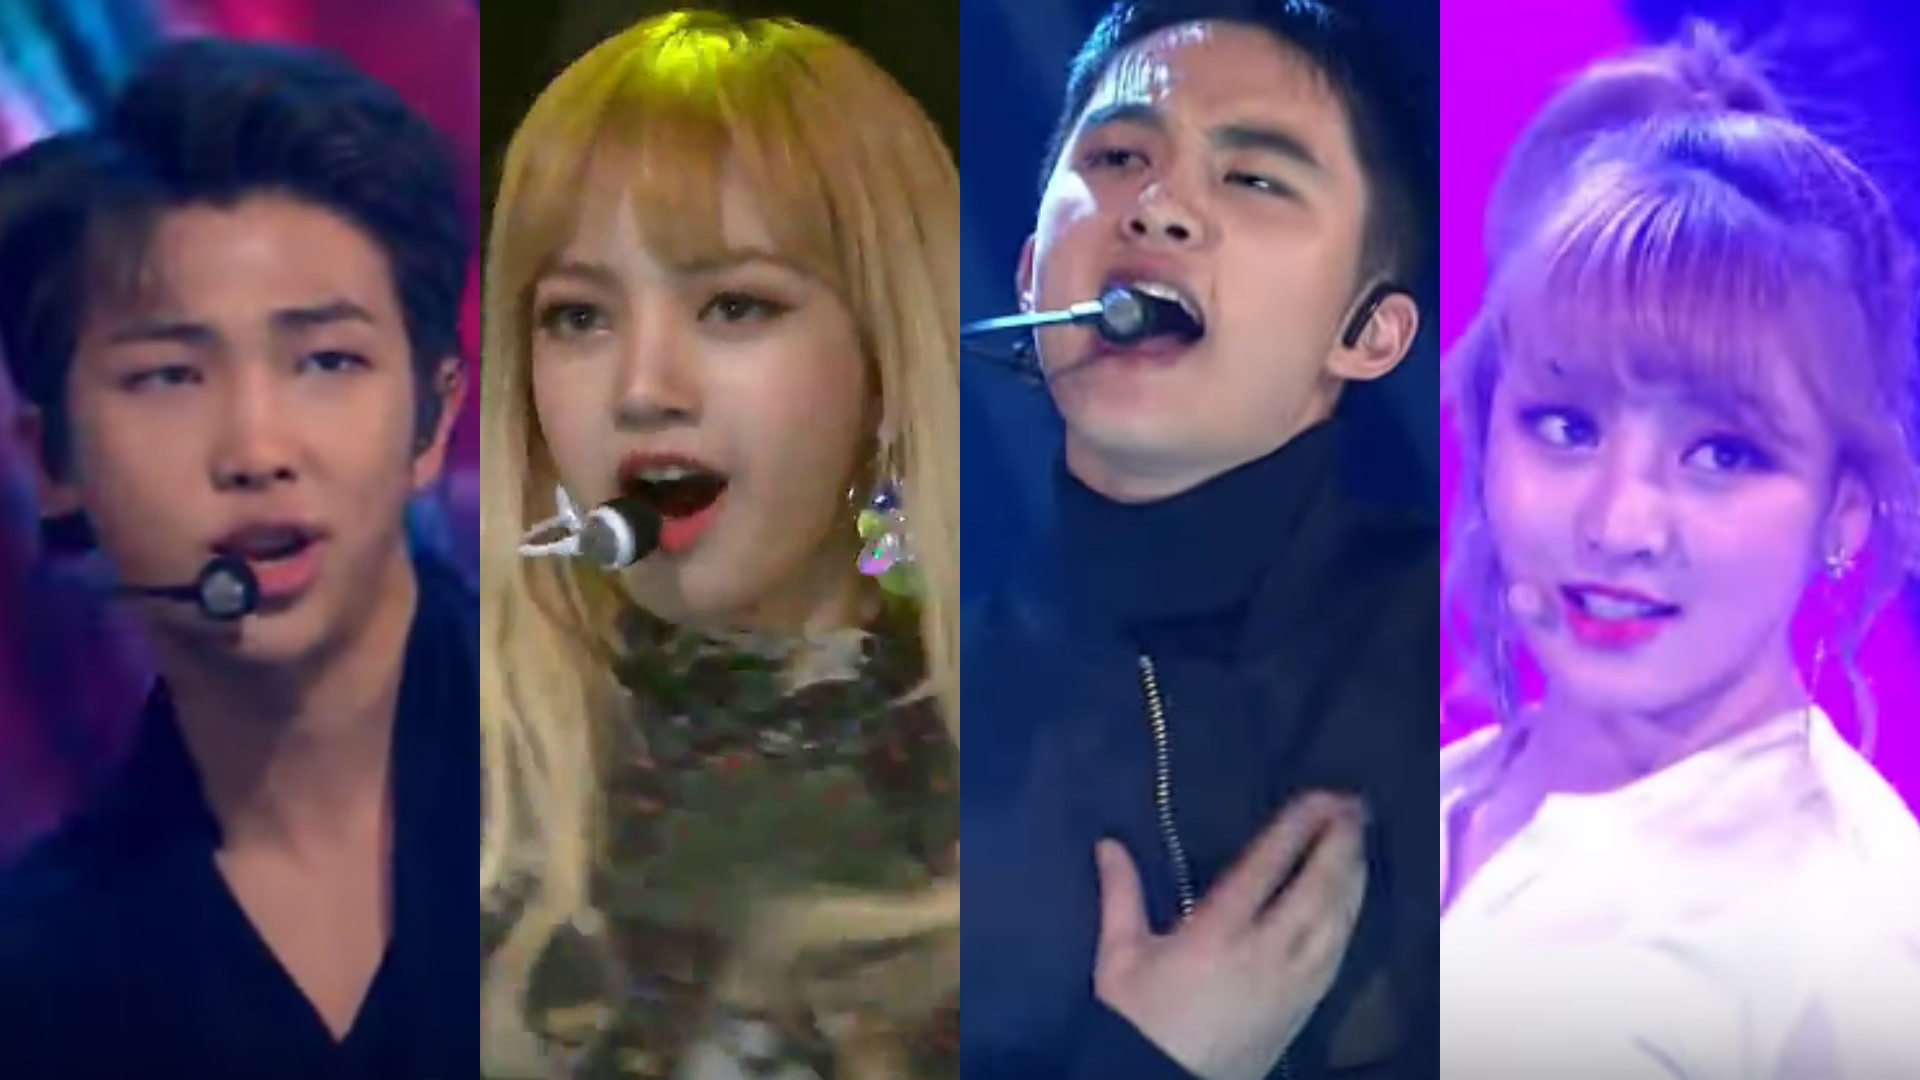 Watch: BTS, BLACKPINK, EXO, TWICE, VIXX, MAMAMOO, And More Light Up The Stage At The 2016 Asia Artist Awards